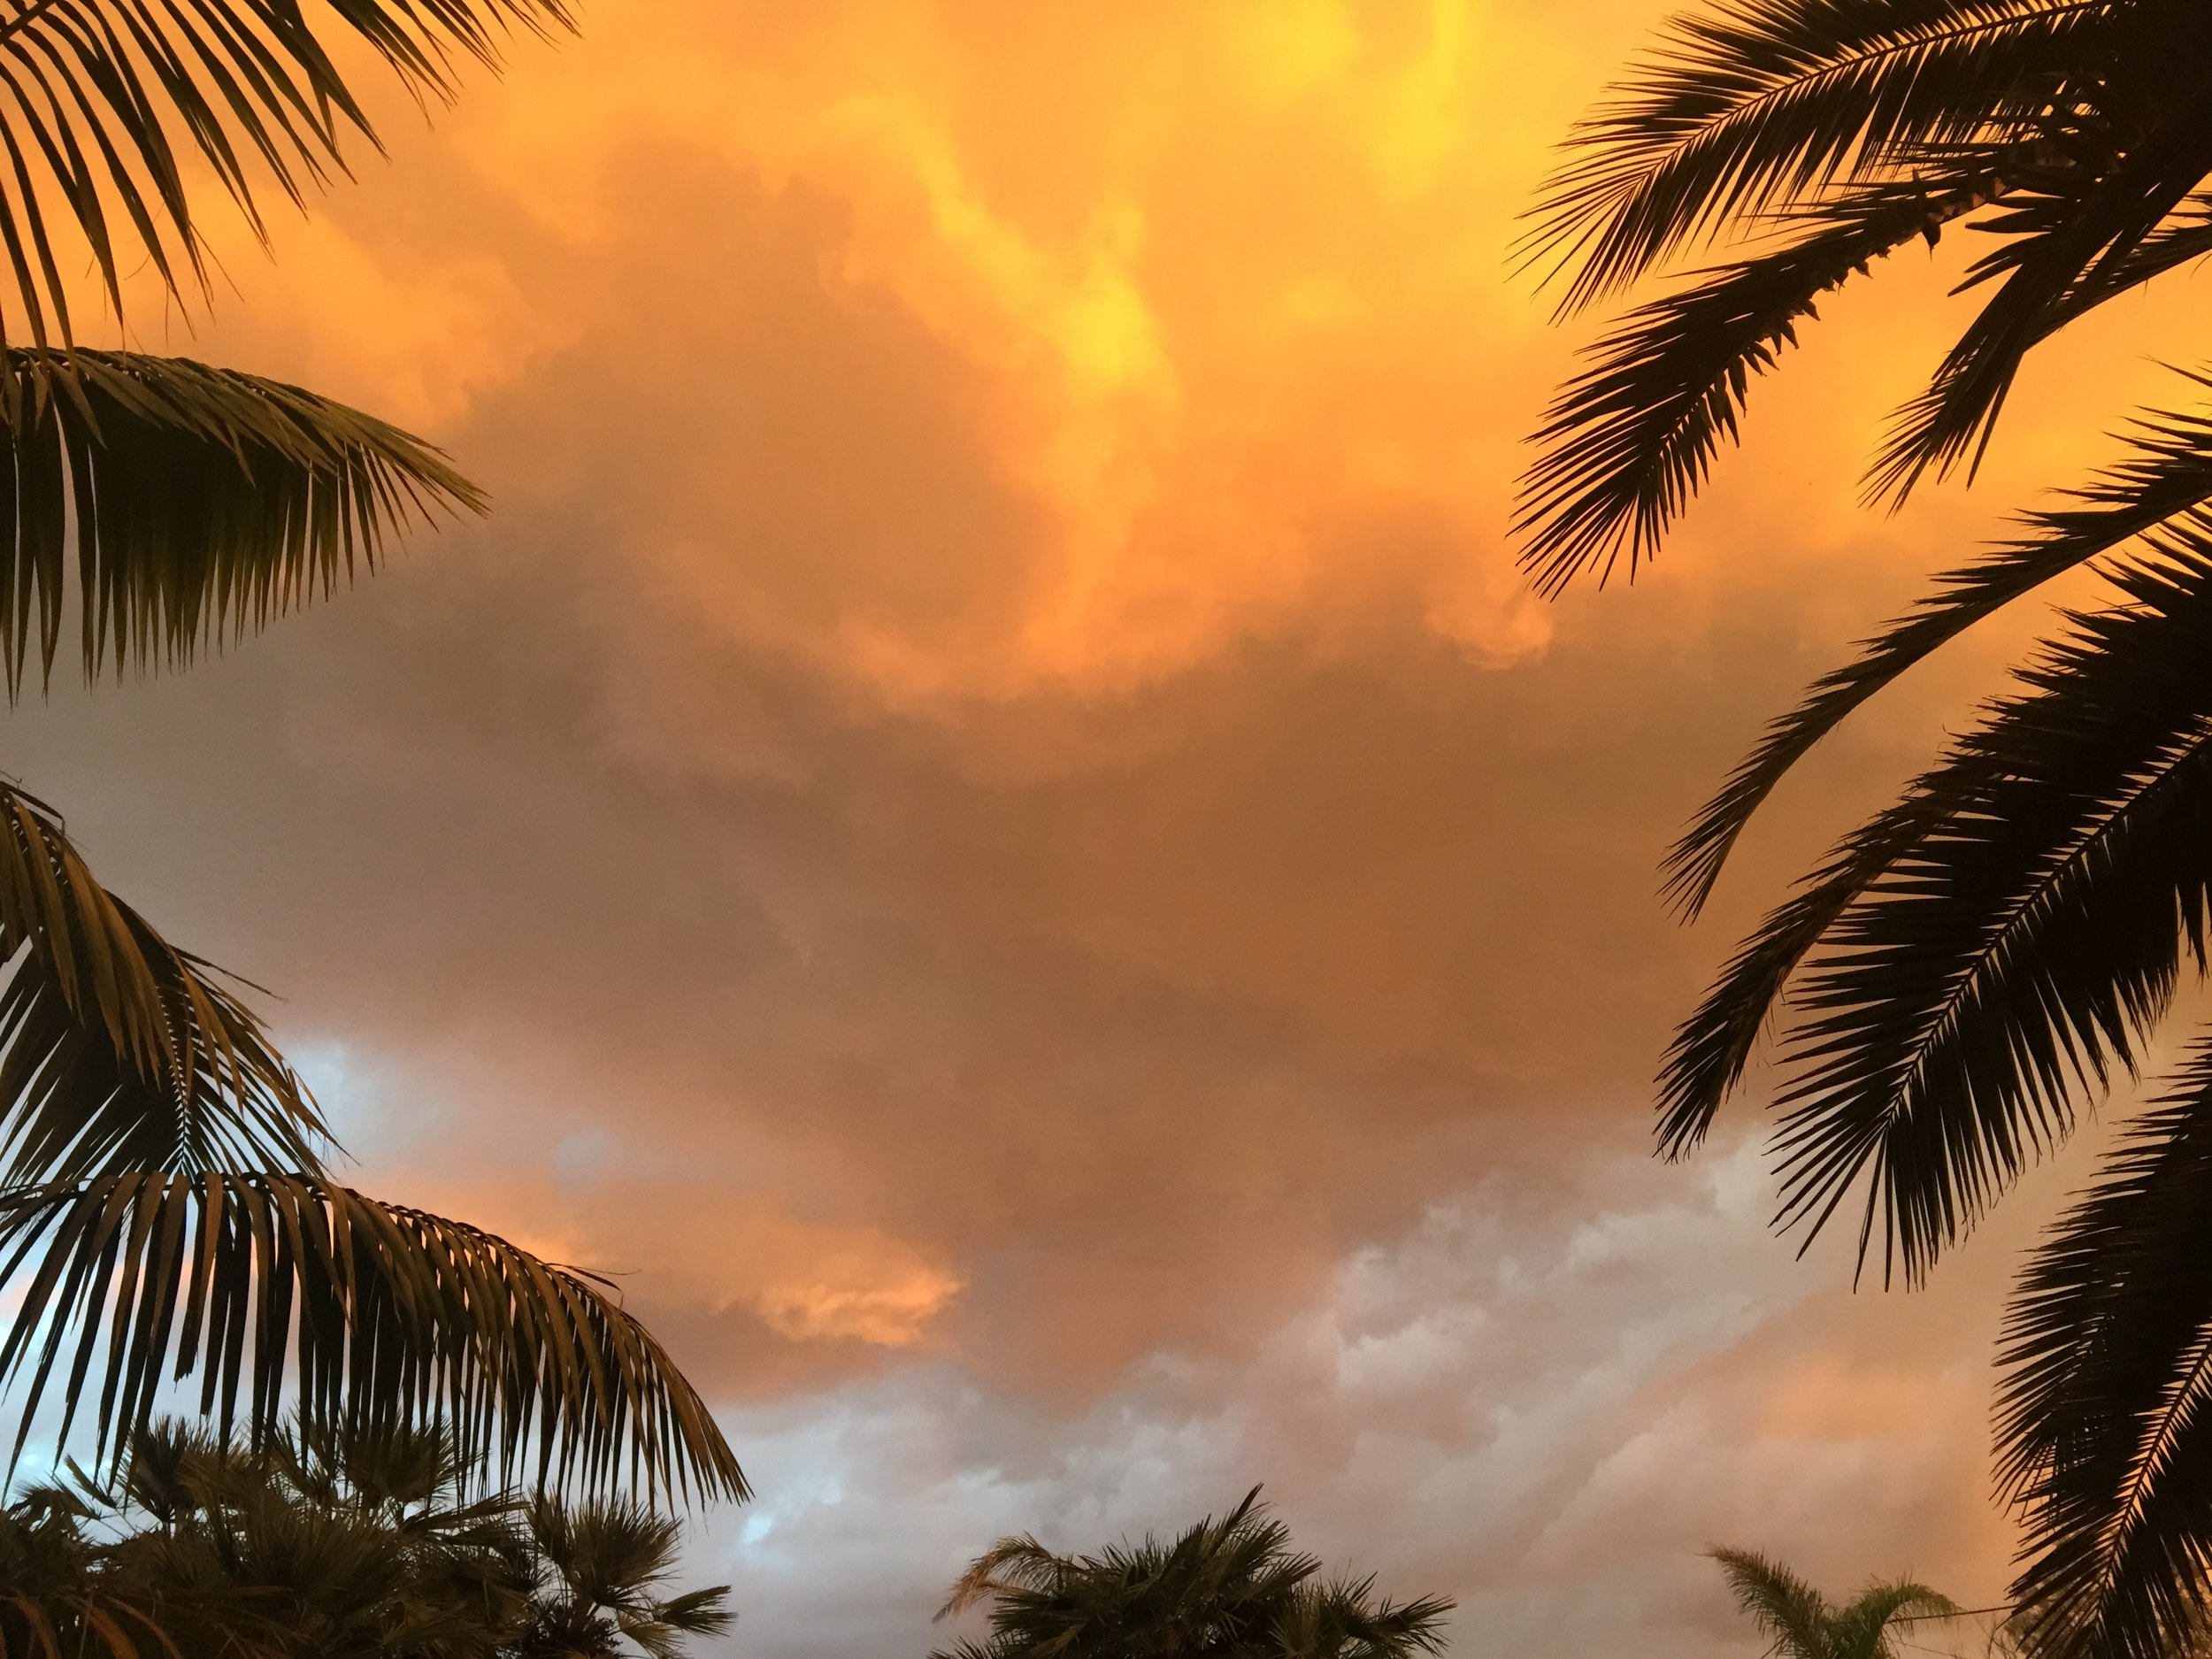 Bayview, San Francisco, CA